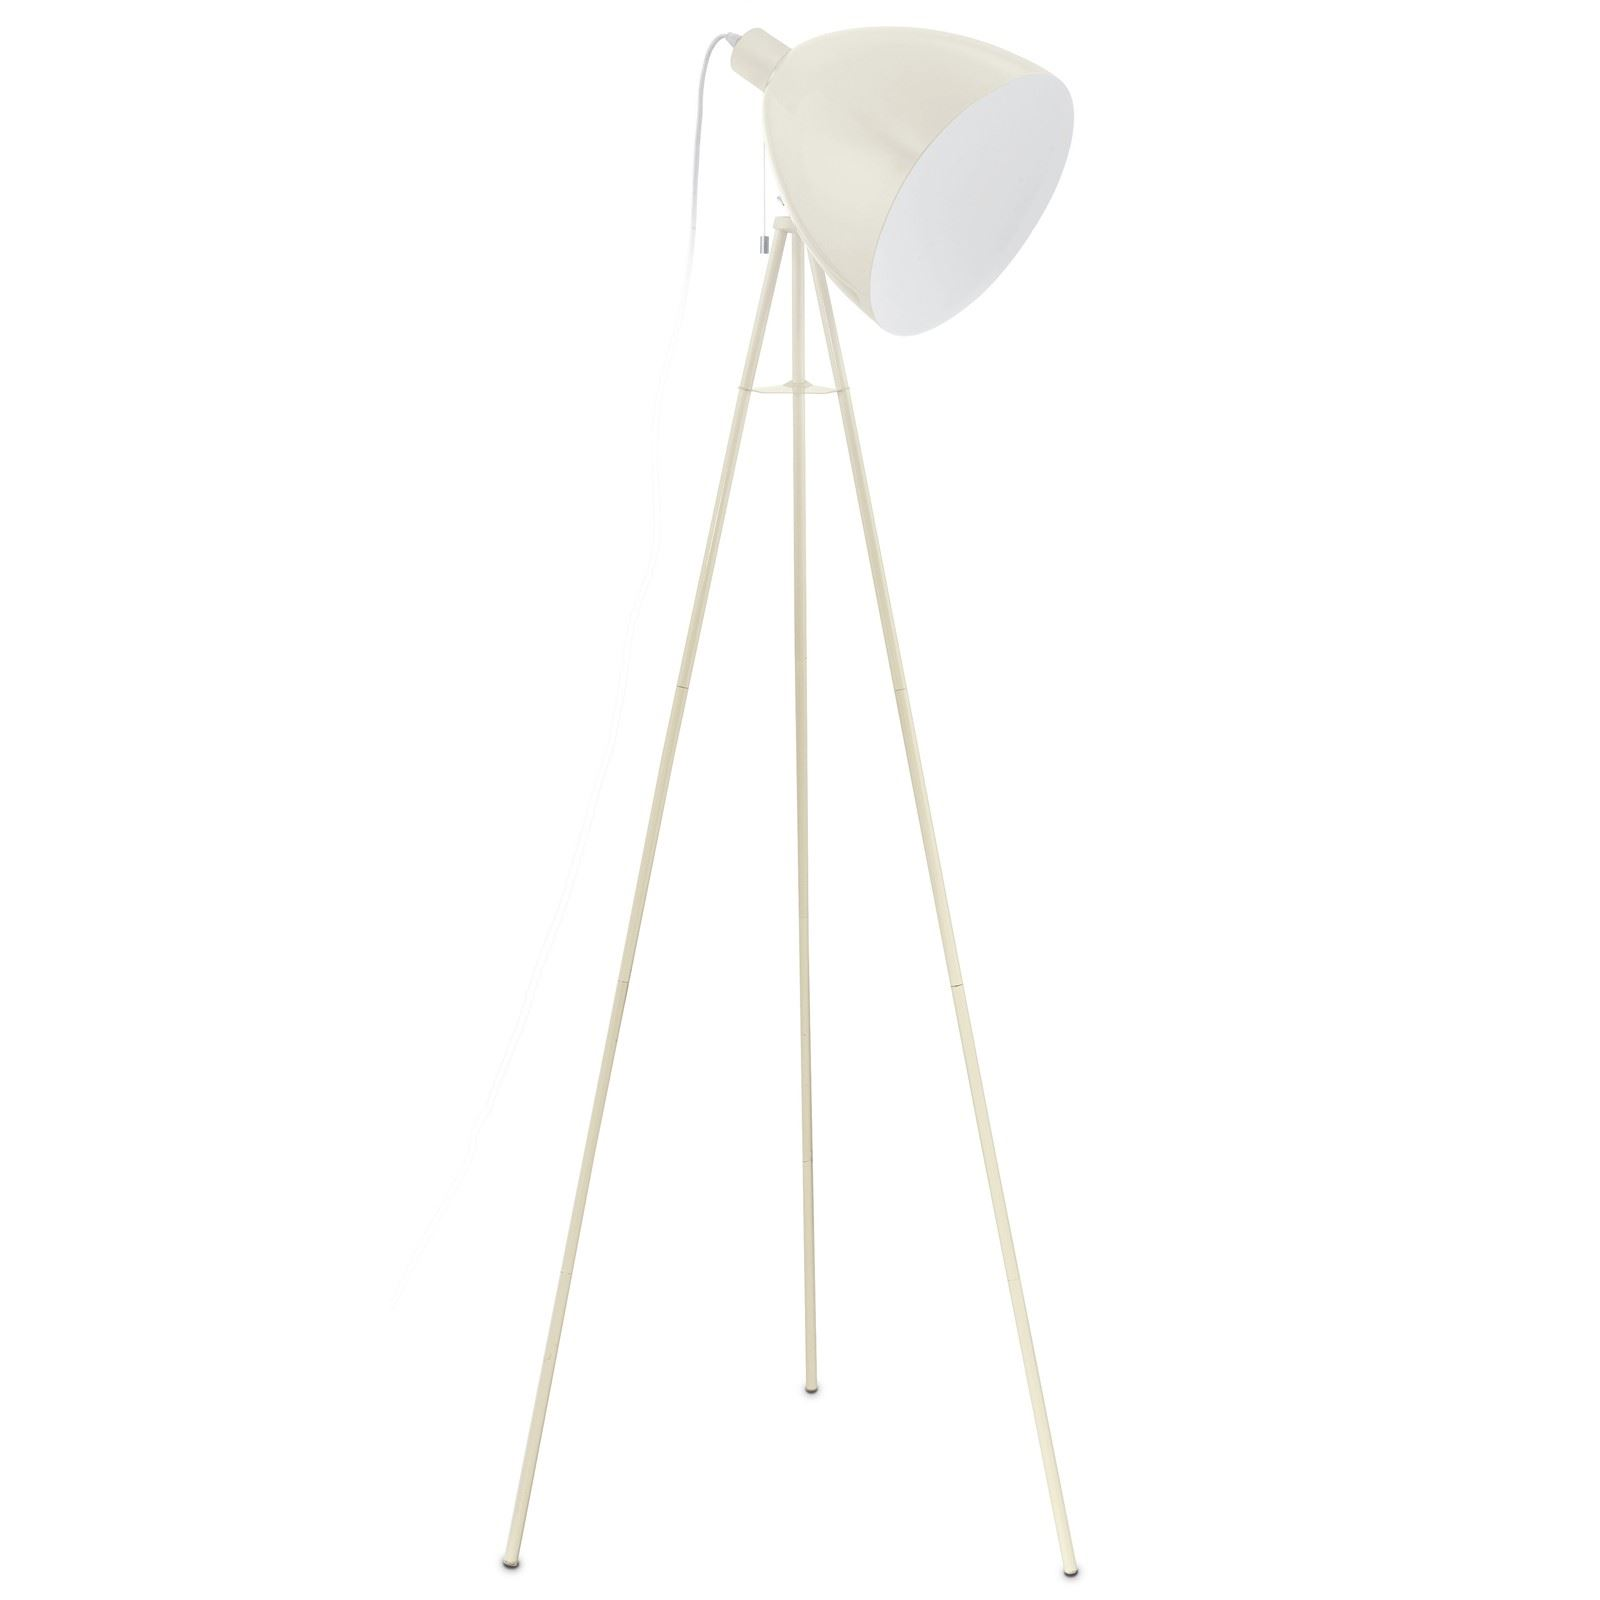 Dundee Stylish Steel Floor Lamp 1 Light E27 Sand Color Finish